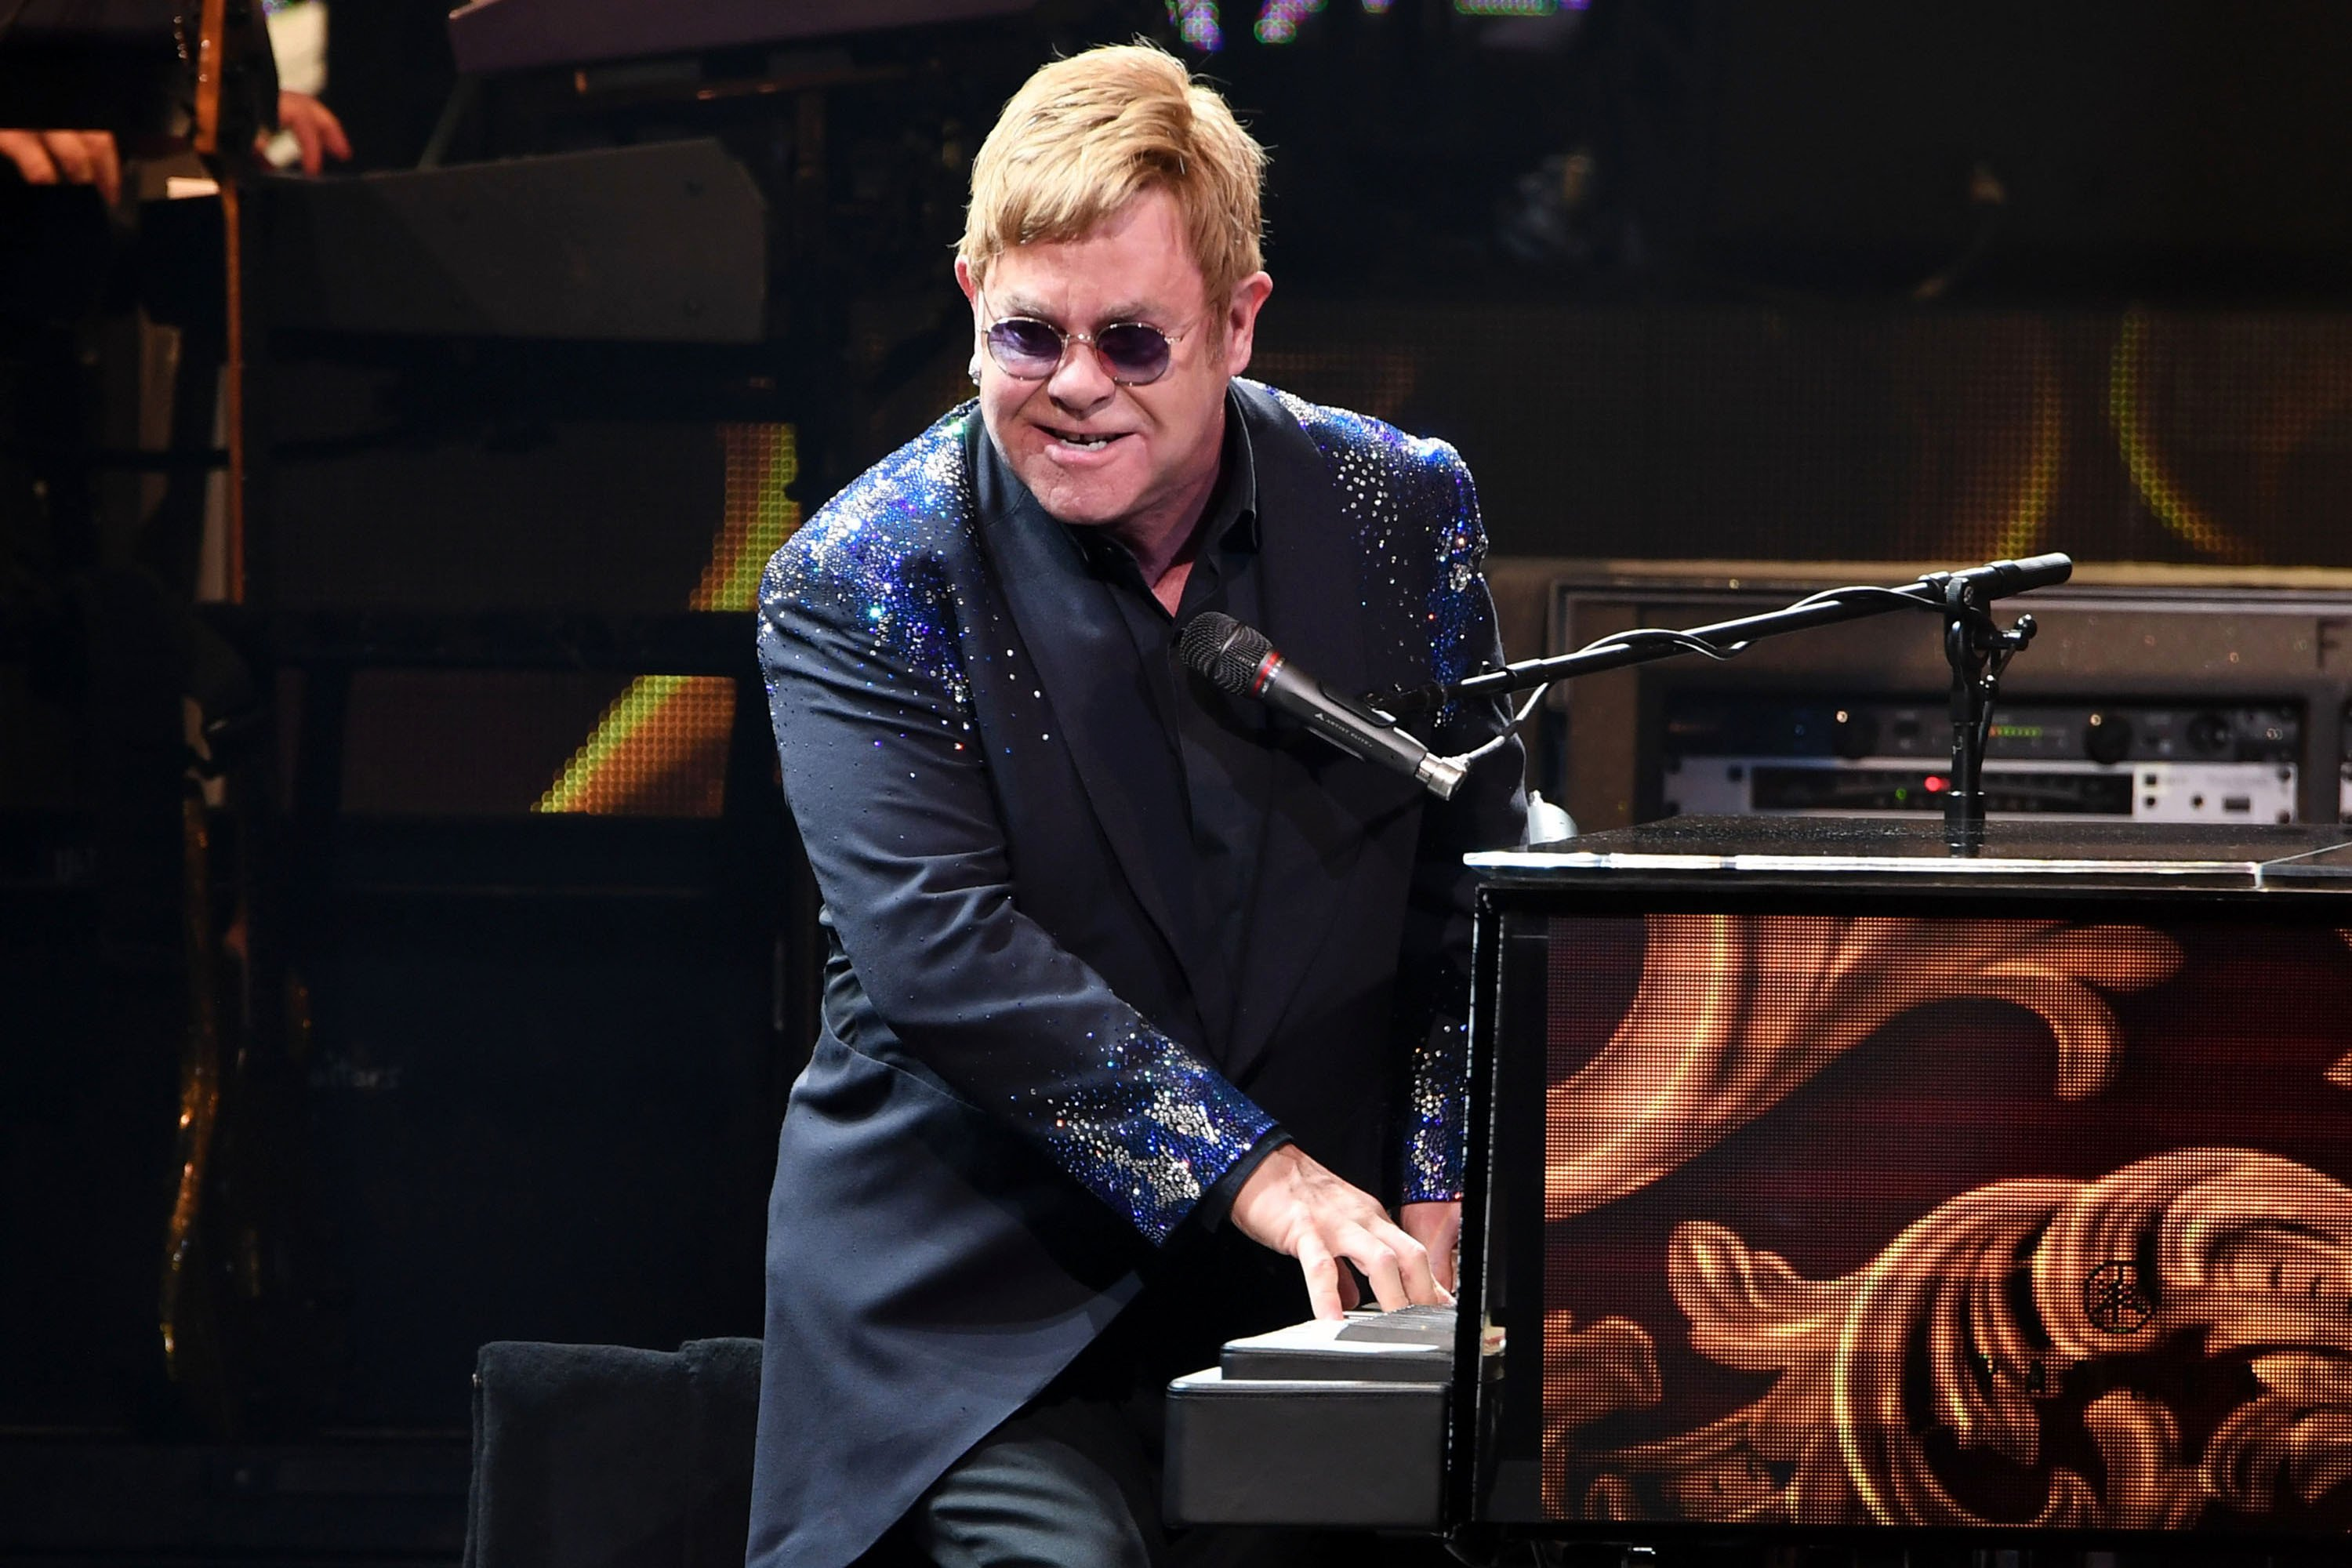 Elton John tells overeager fan to 'f–k off' before leaving stage